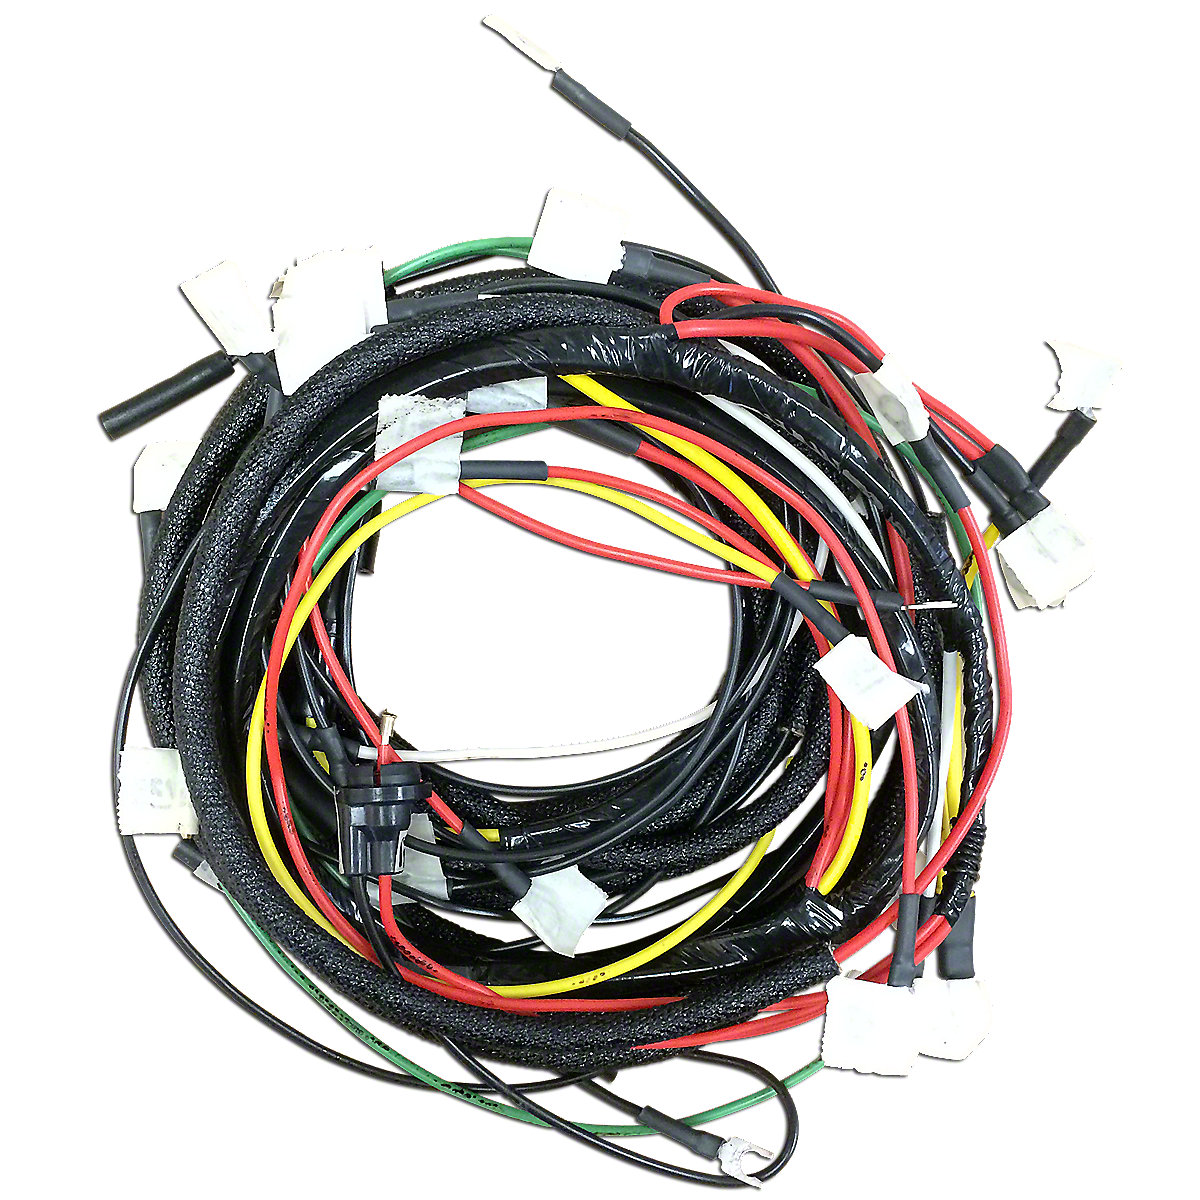 Wiring Harness Kit Fds2869 Wire Sheathing Restoration Quality